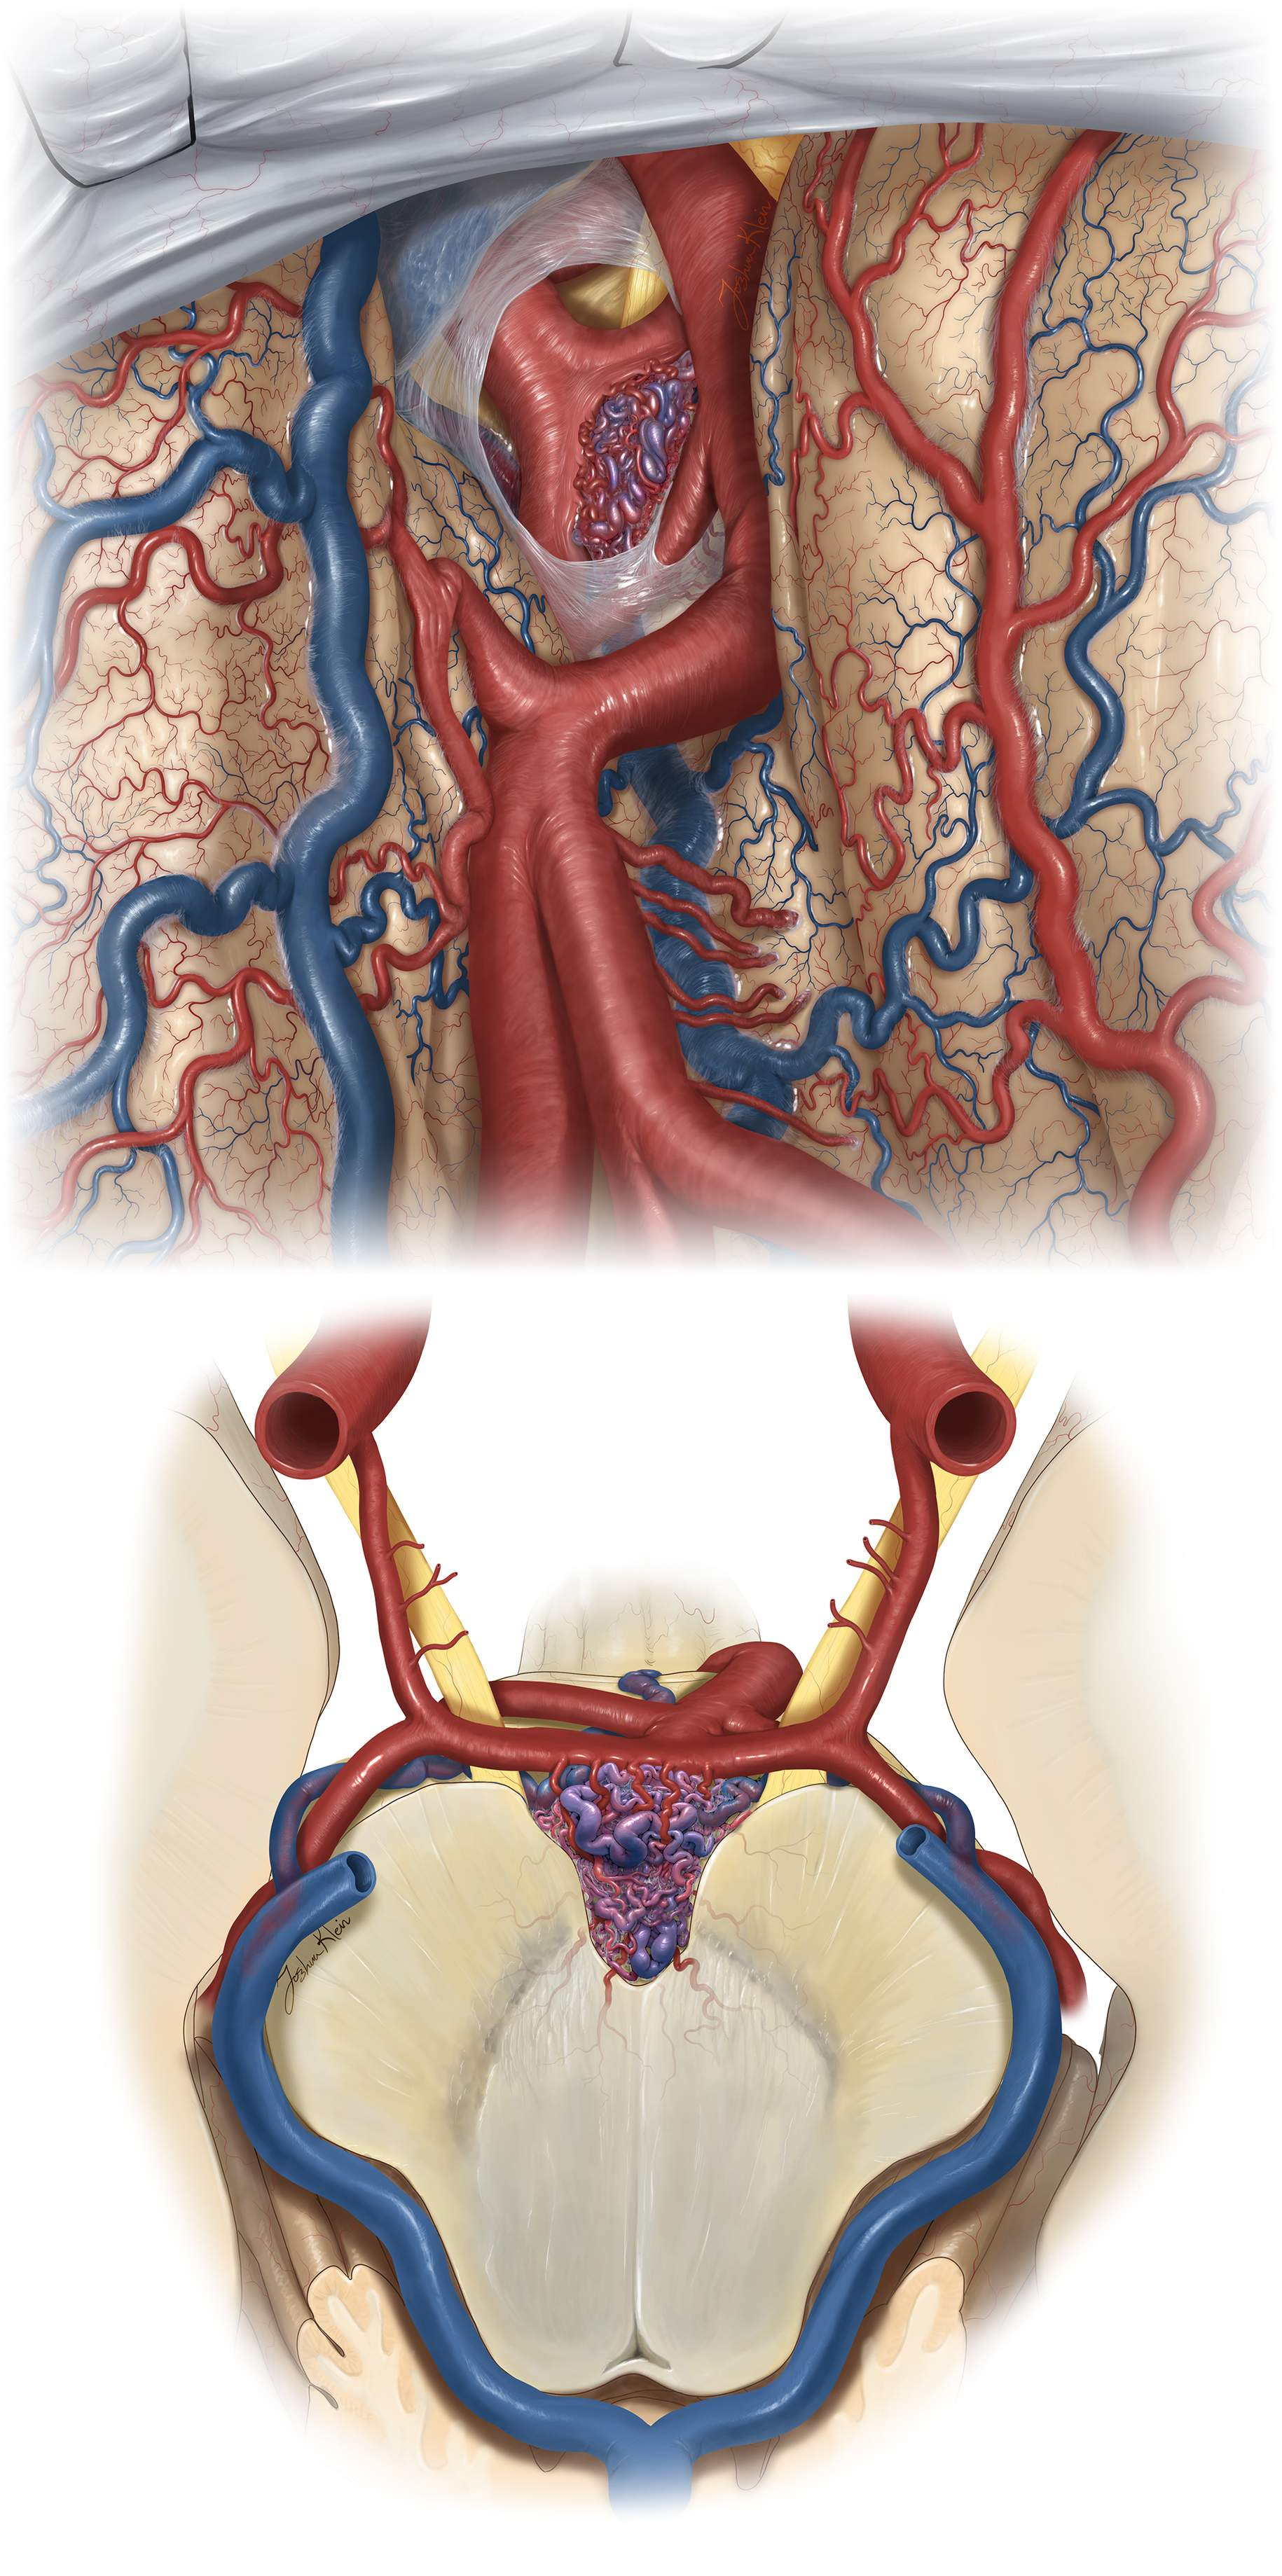 Figure 7: Naturally, this is a deep-seated AVM with many vital structures in the proximity (top image.) A wide operative corridor is mandatory via generous Sylvian fissure dissection.The typicalangioarchitecture of an anterior midbrain AVM is demonstrated. Please note the deep perforating arteries within the brainstem that have to be strictly protected. The piamust not be violated during resective maneuvers (bottom image.)